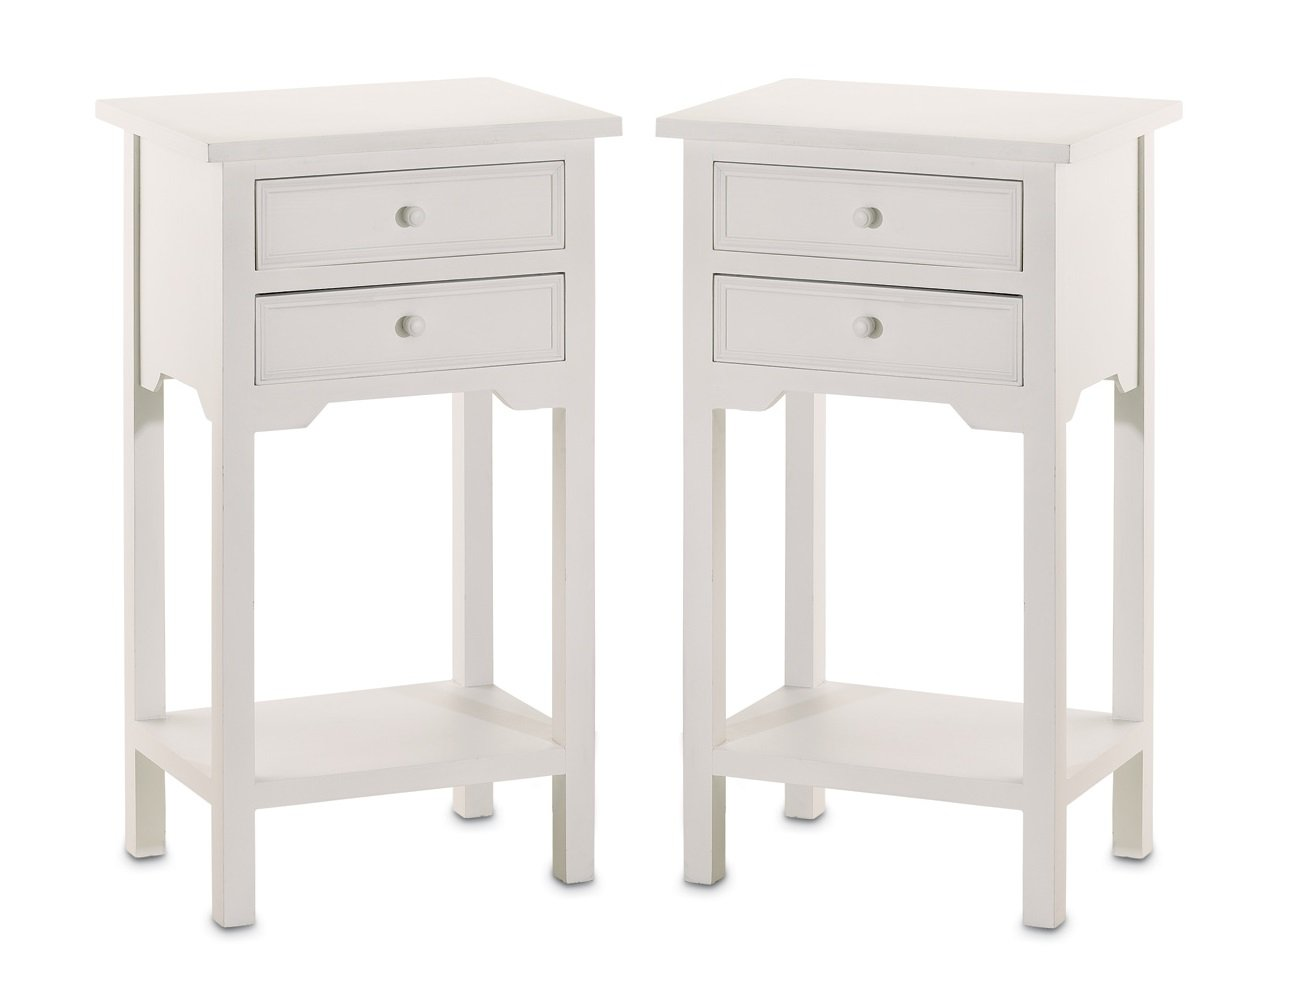 Finest Amazon.com: Set of 2 Wood White End Tables Nightstands with Two  YZ65